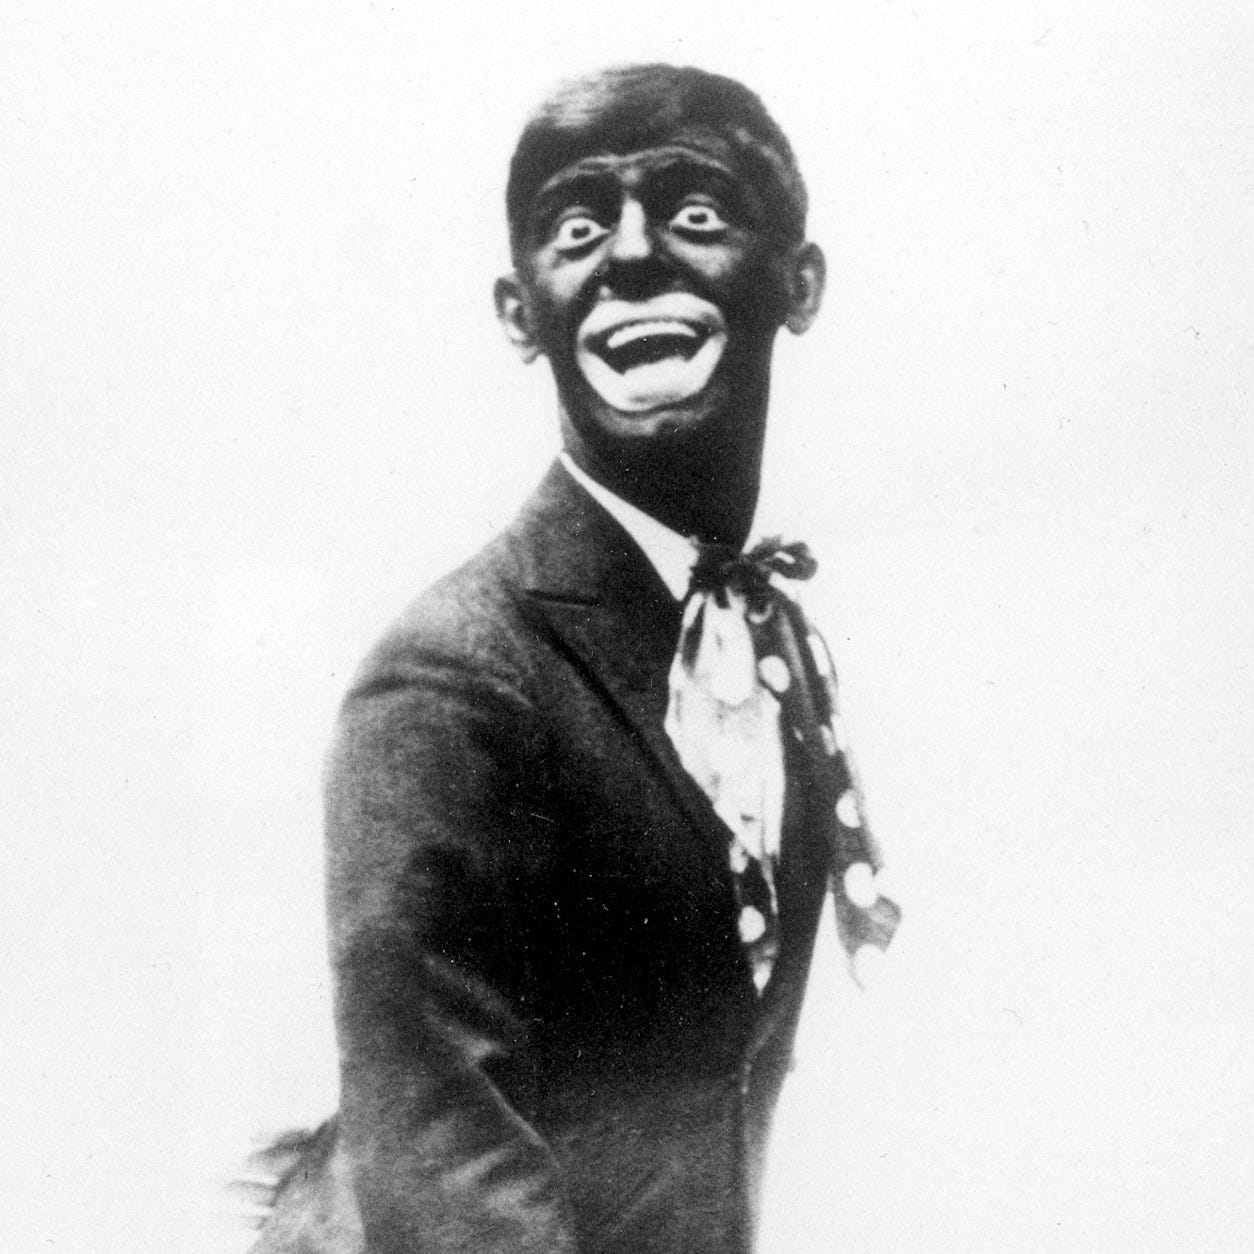 Blackface scandals keep happening. Indiana students are rarely taught its racist history.